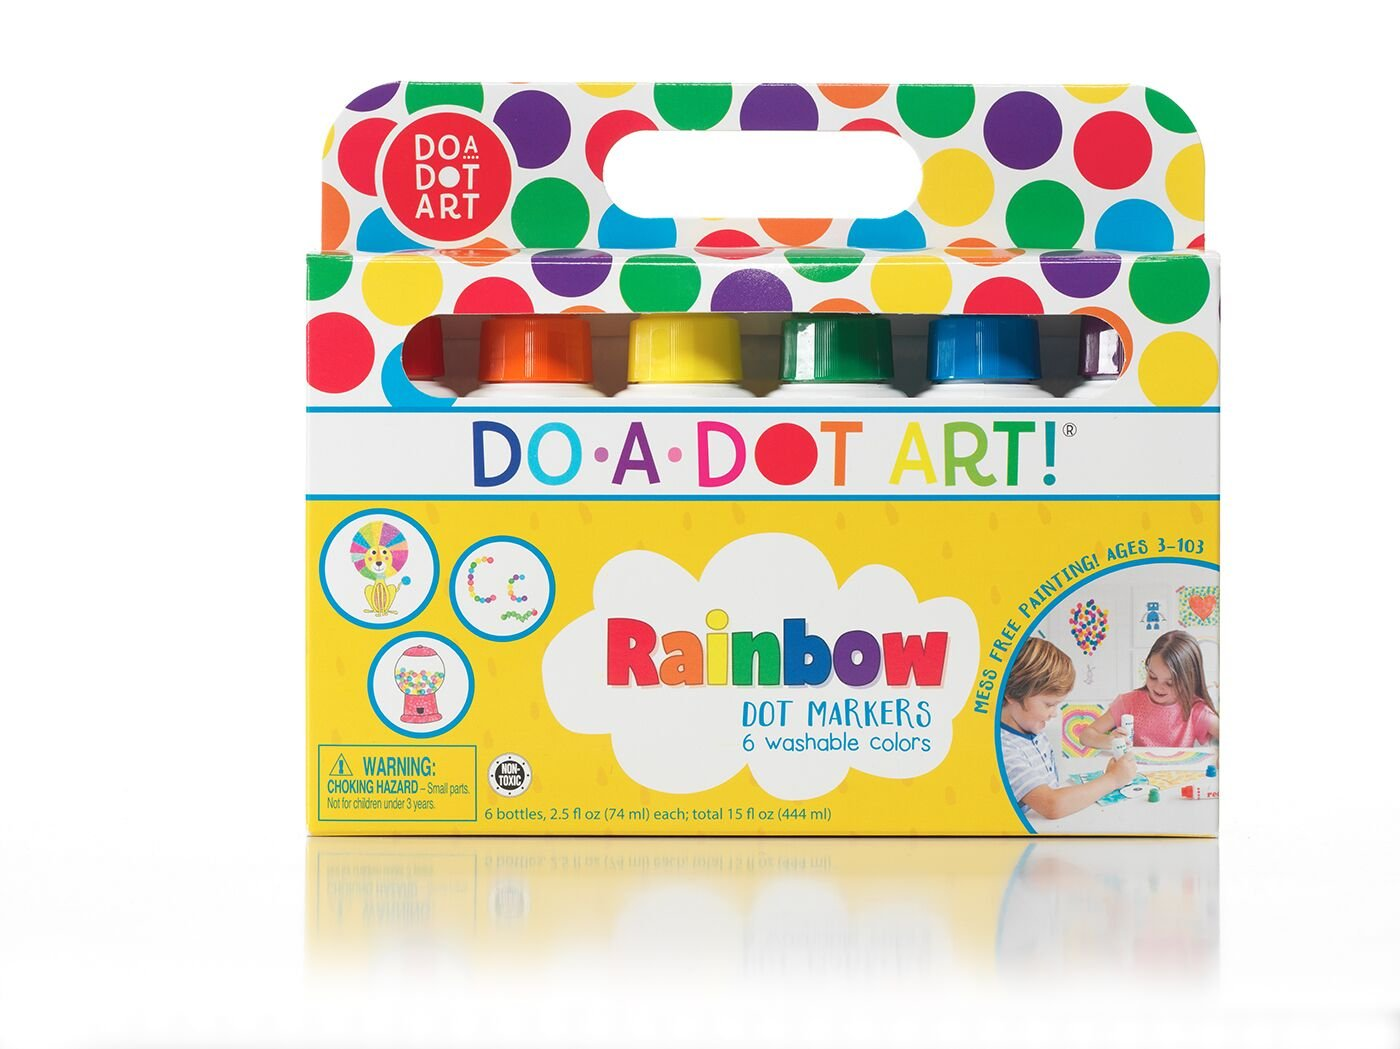 Do A Dot Art! Markers 6-Pack Rainbow Washable Paint Markers, The Original Dot Marker by Do A Dot Art